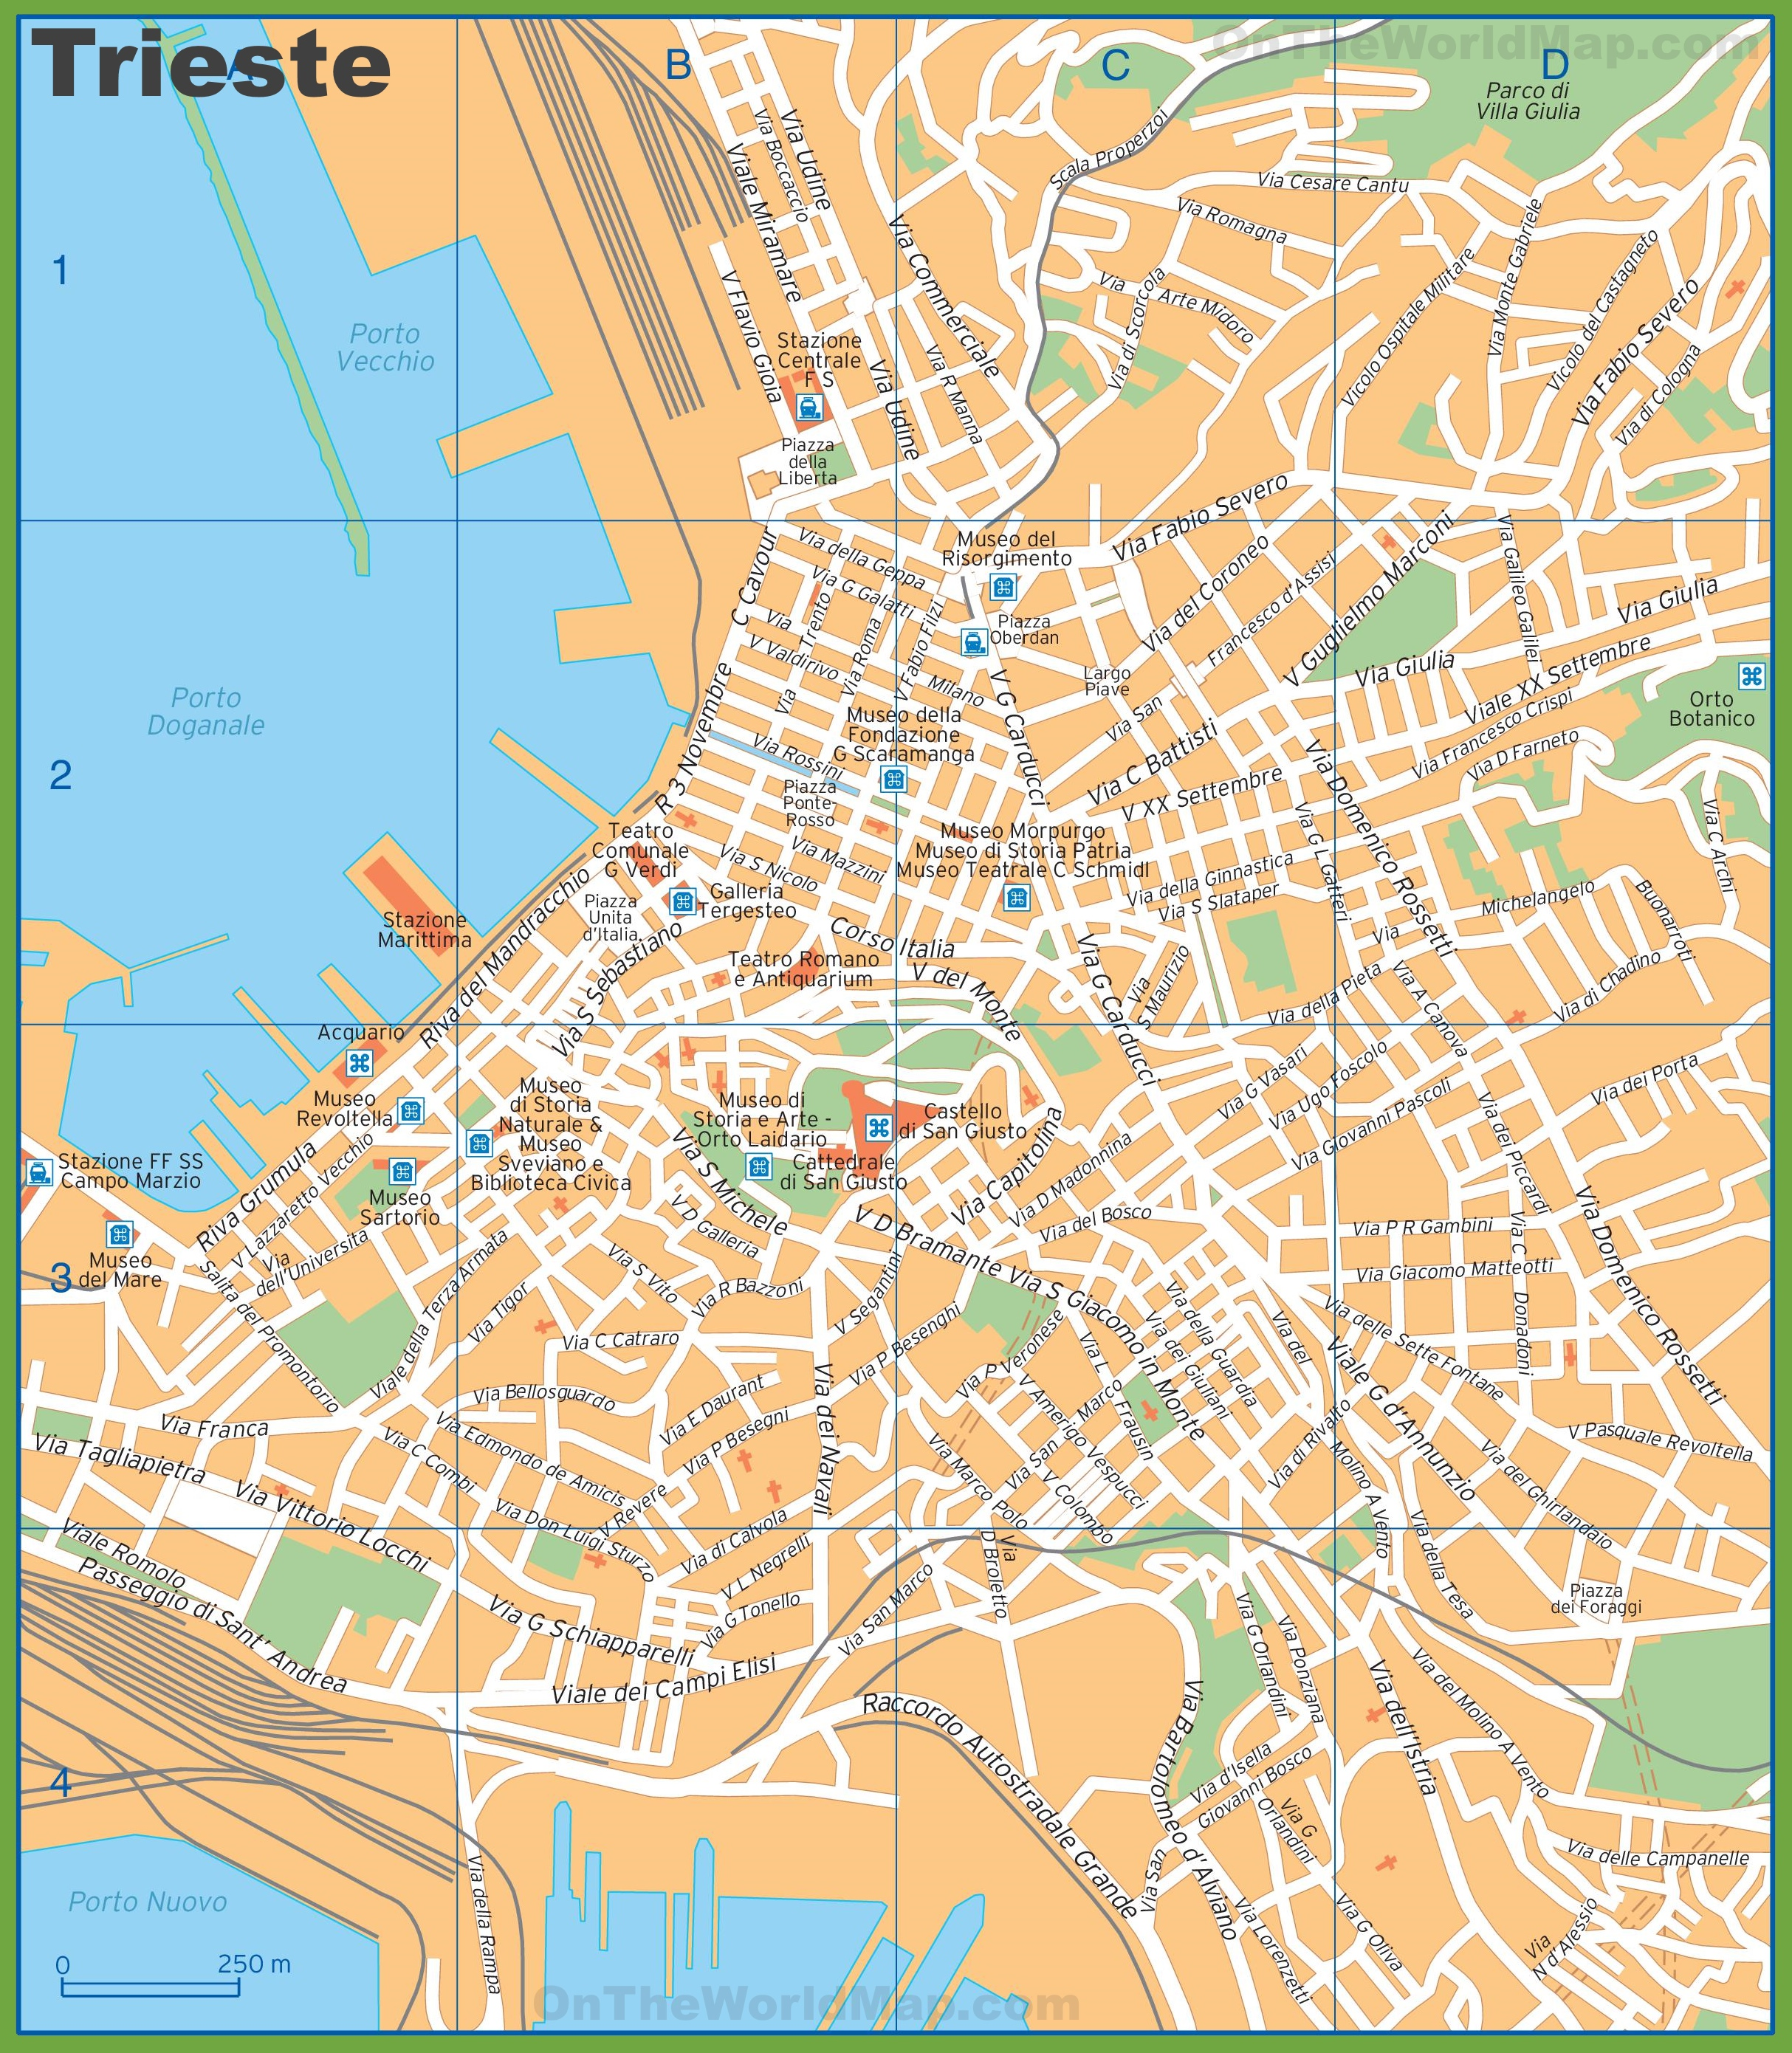 Tourist map of Trieste city centre